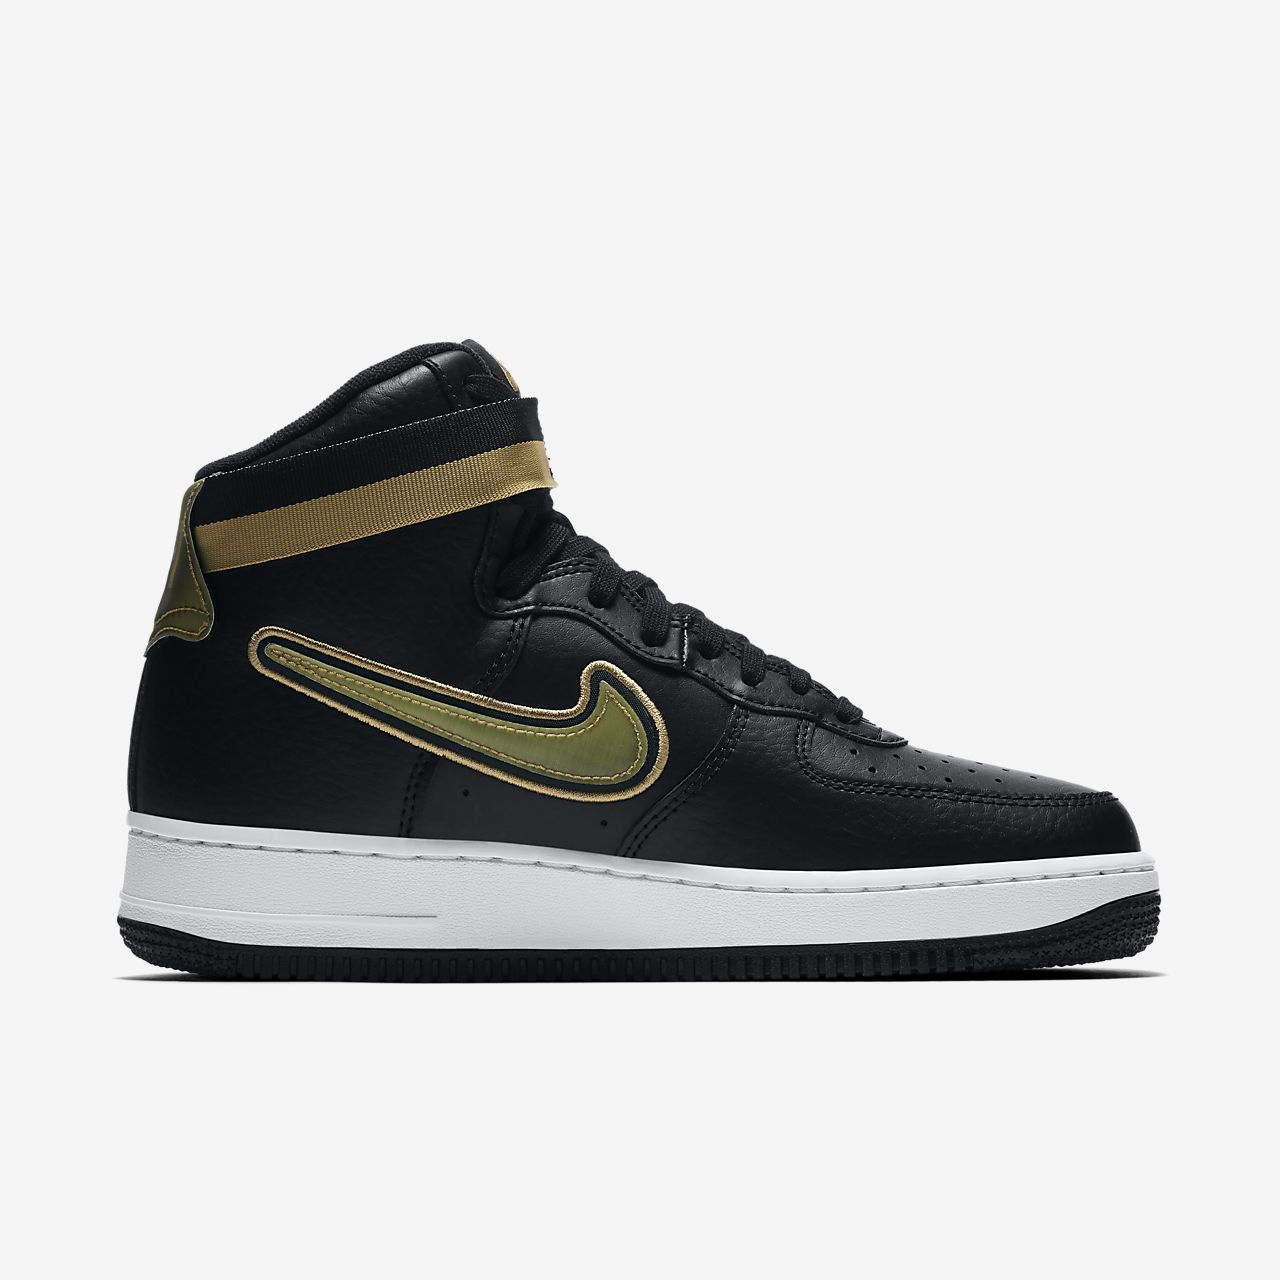 '07 Calzado Hombre 1 Nba Nike Sport Para Force Air High Lv8 tsrdCQh